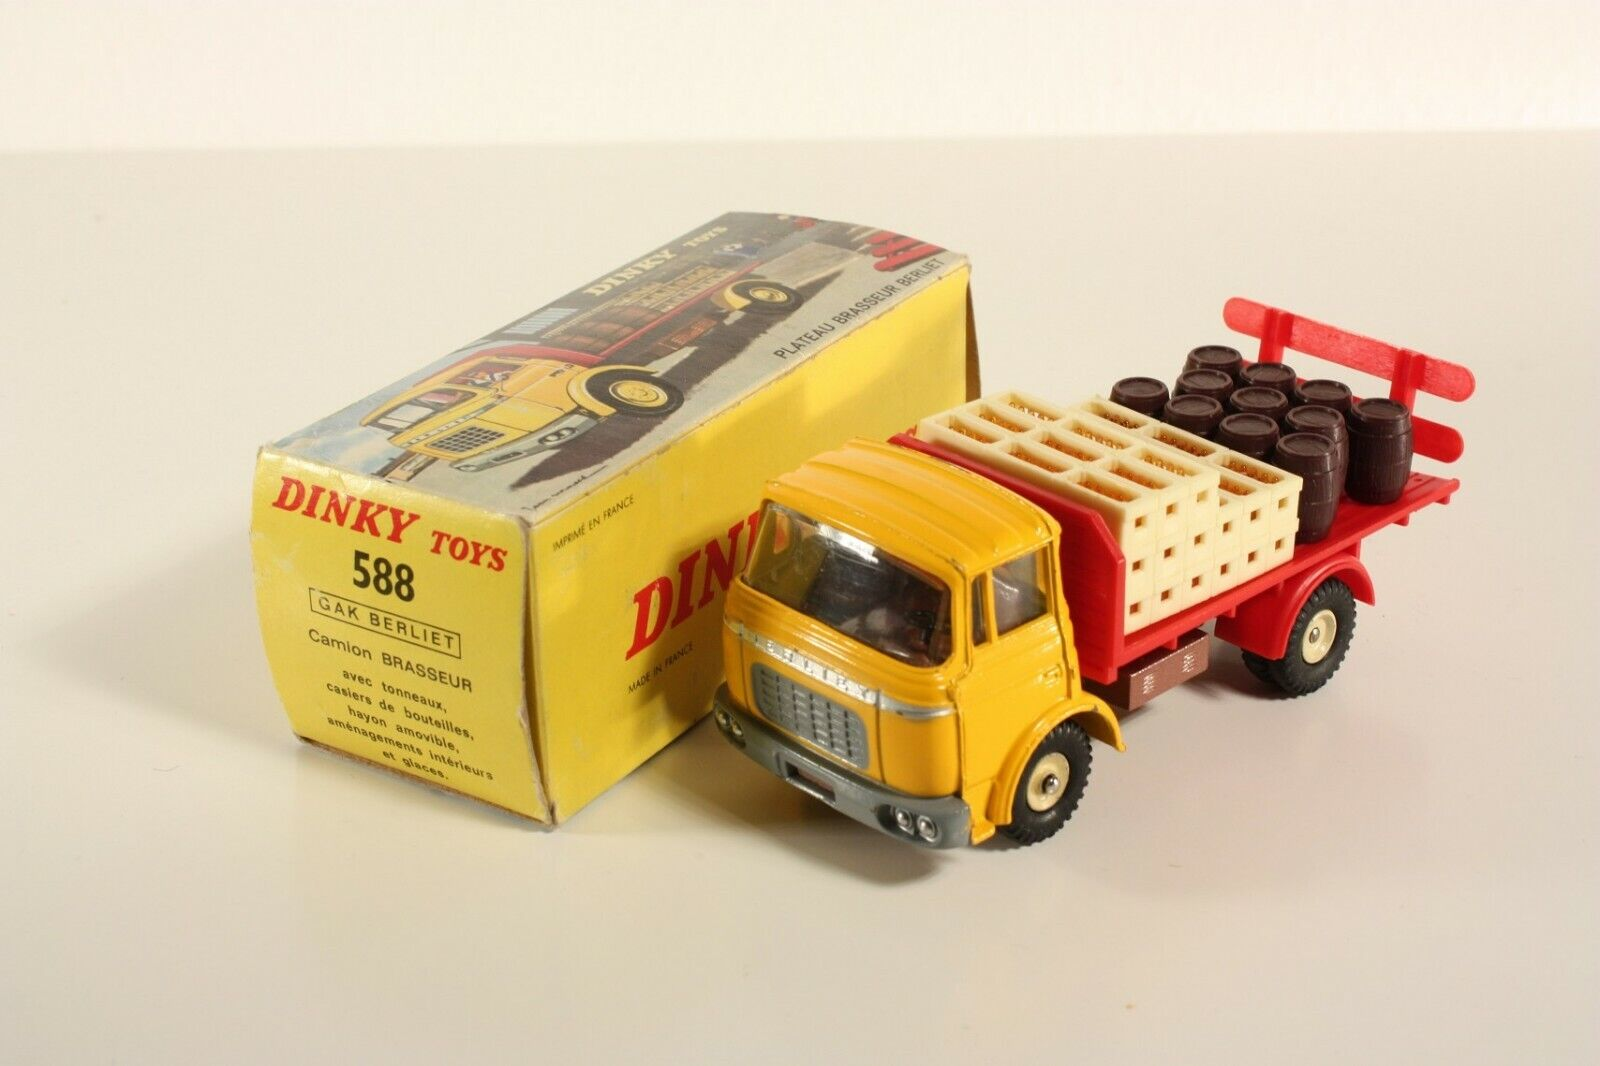 DINKY TOYS 588, Camion Brasseur Berliet, Comme neuf in box  ab2195